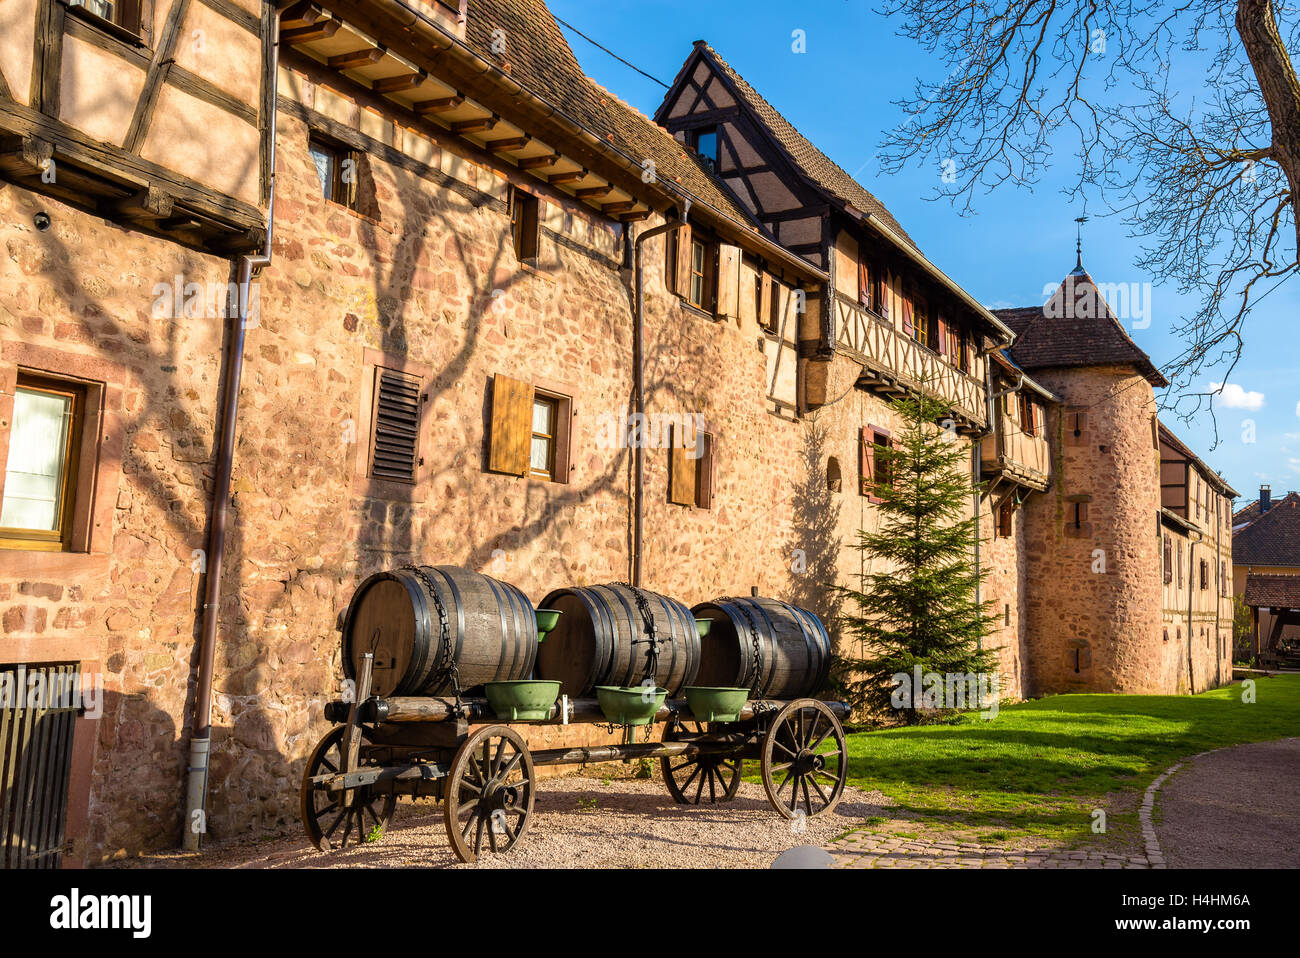 Cart with barrels at Riquewihr - Alsace, France Stock Photo